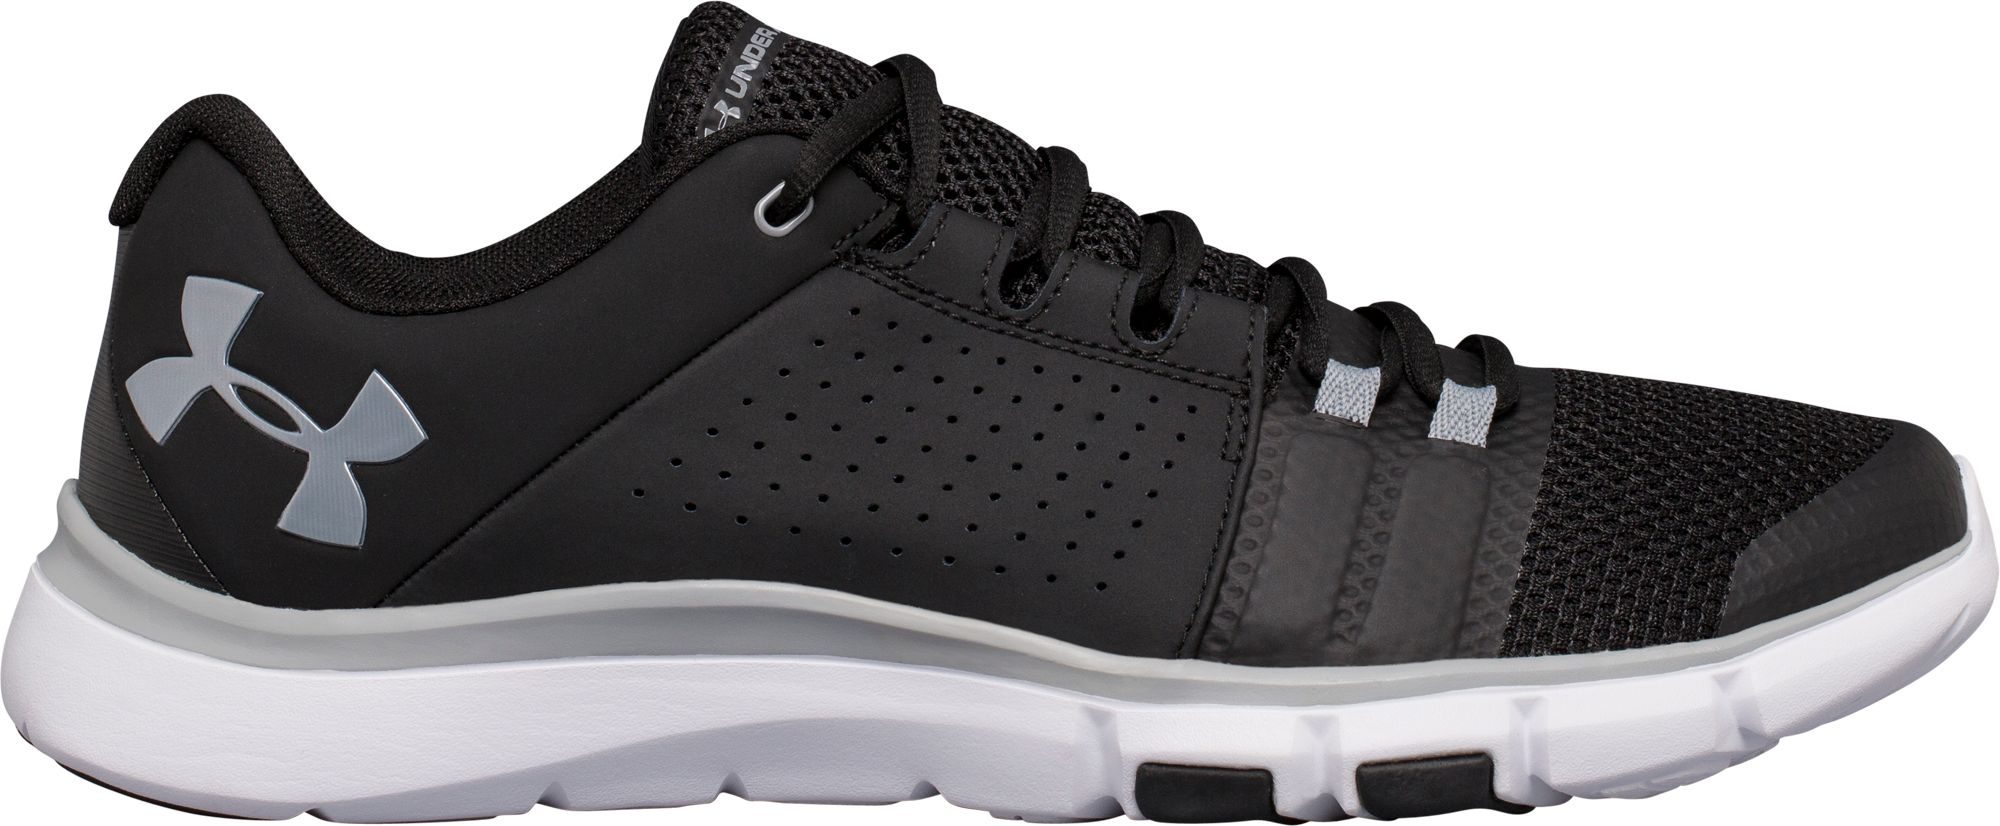 under armour shoes black and white. under armour men\u0027s strive 7 training shoes black and white i